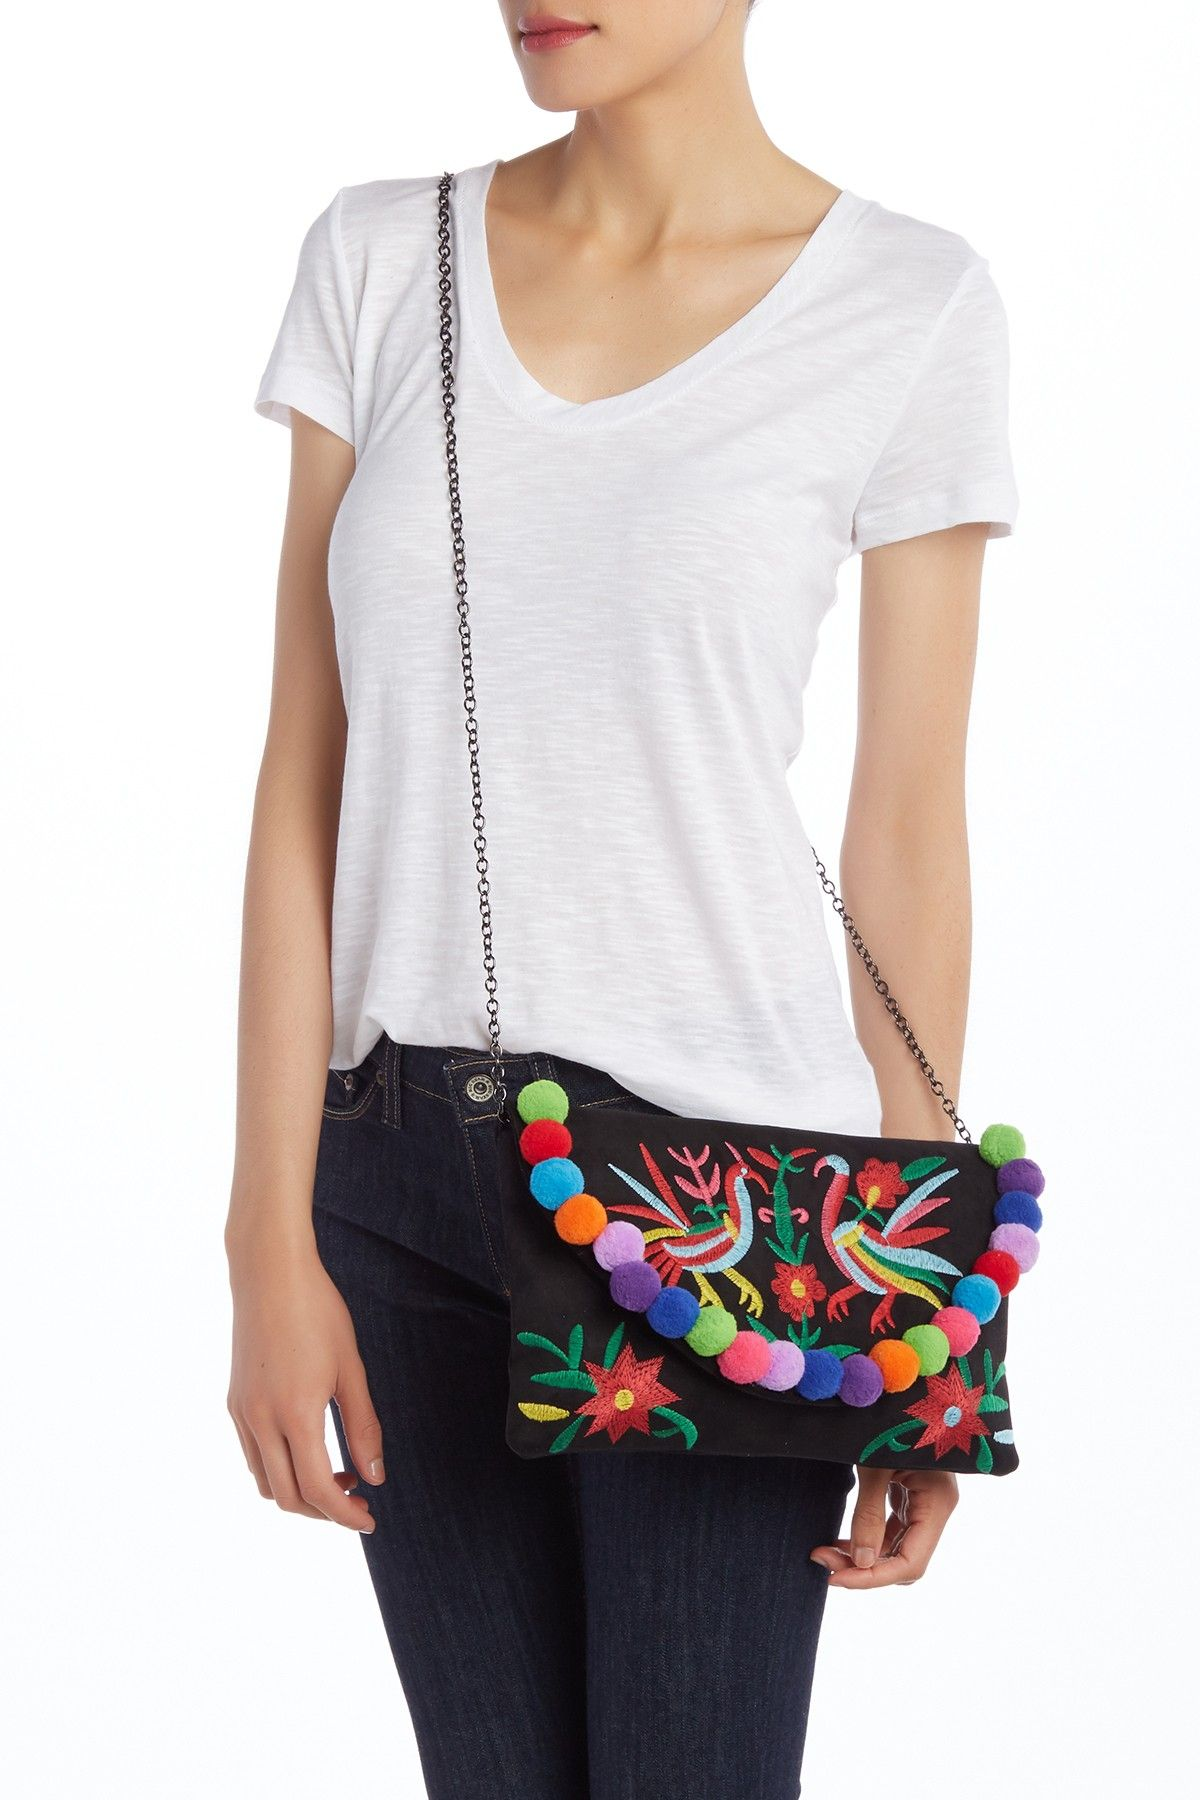 00b70ef6a Morgan Pompom Clutch by Pink Haley on  nordstrom rack